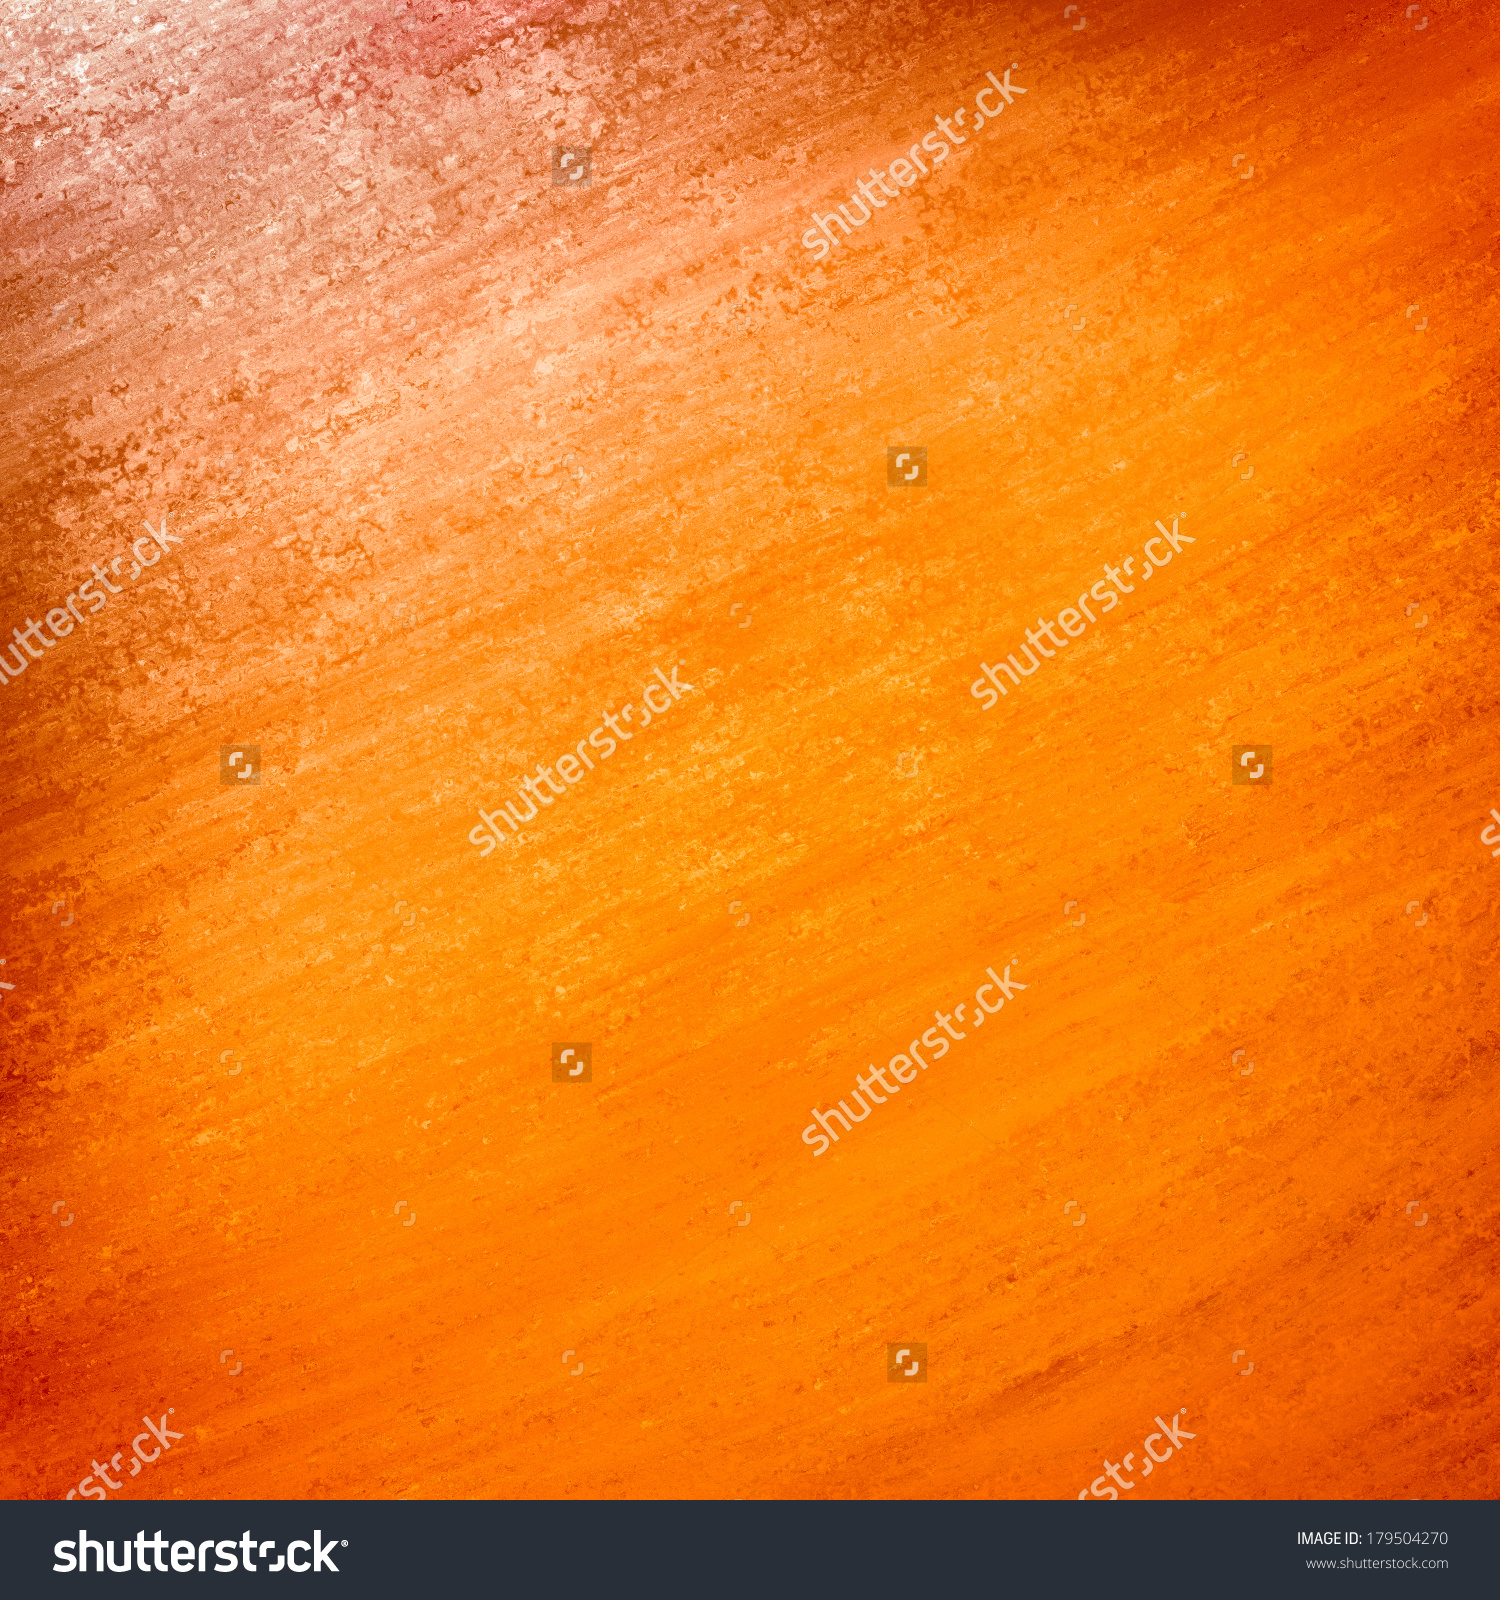 Solid Orange Gold Background Wall Paint Stock Illustration.